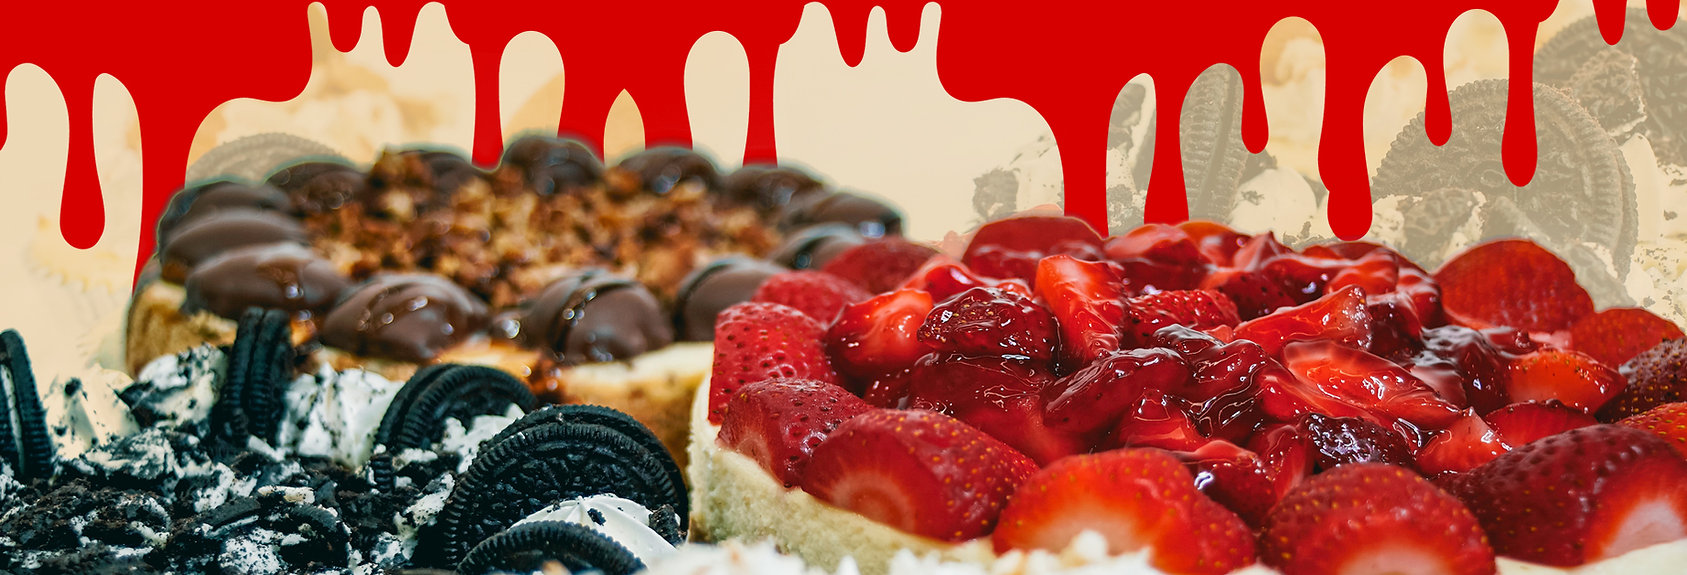 For the Love of Cheesecake Strawberry Cheesecake Oreo Cheesecake Turtle Cheesecake